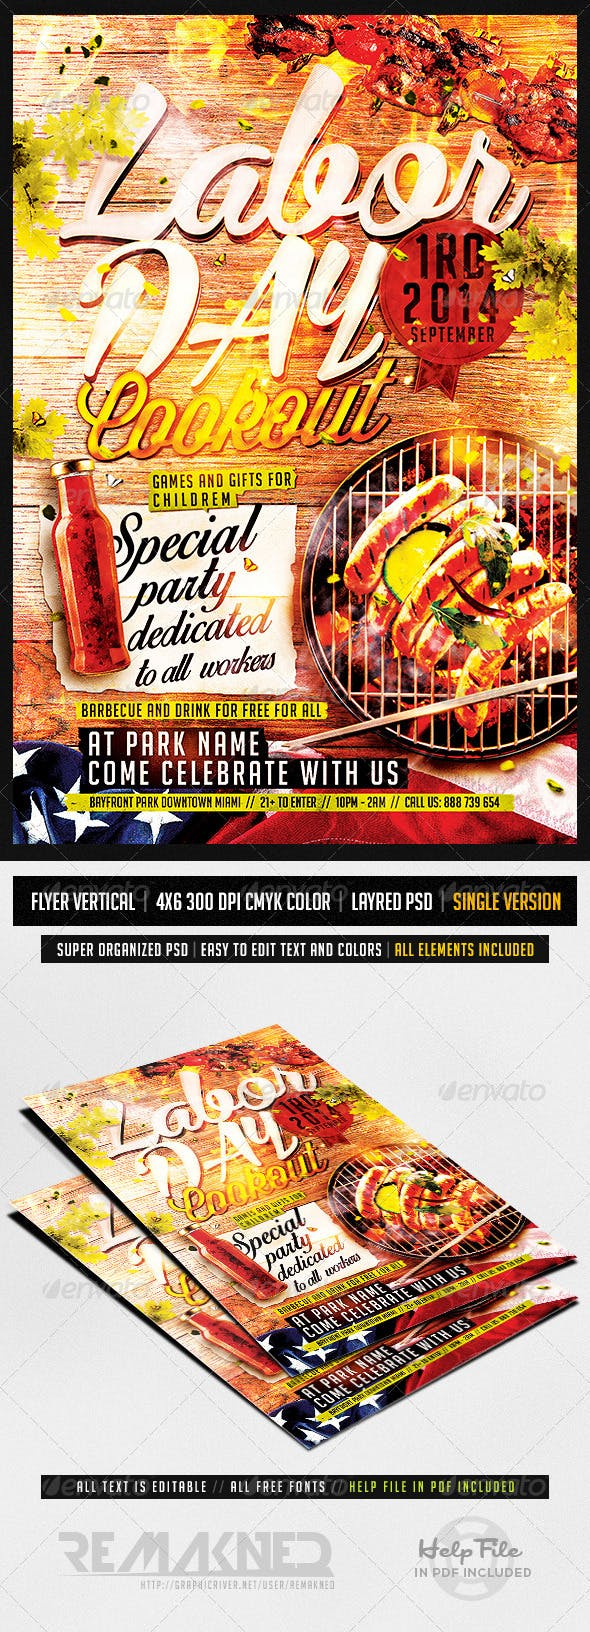 labor day cookout flyer template psd by remakned graphicriver